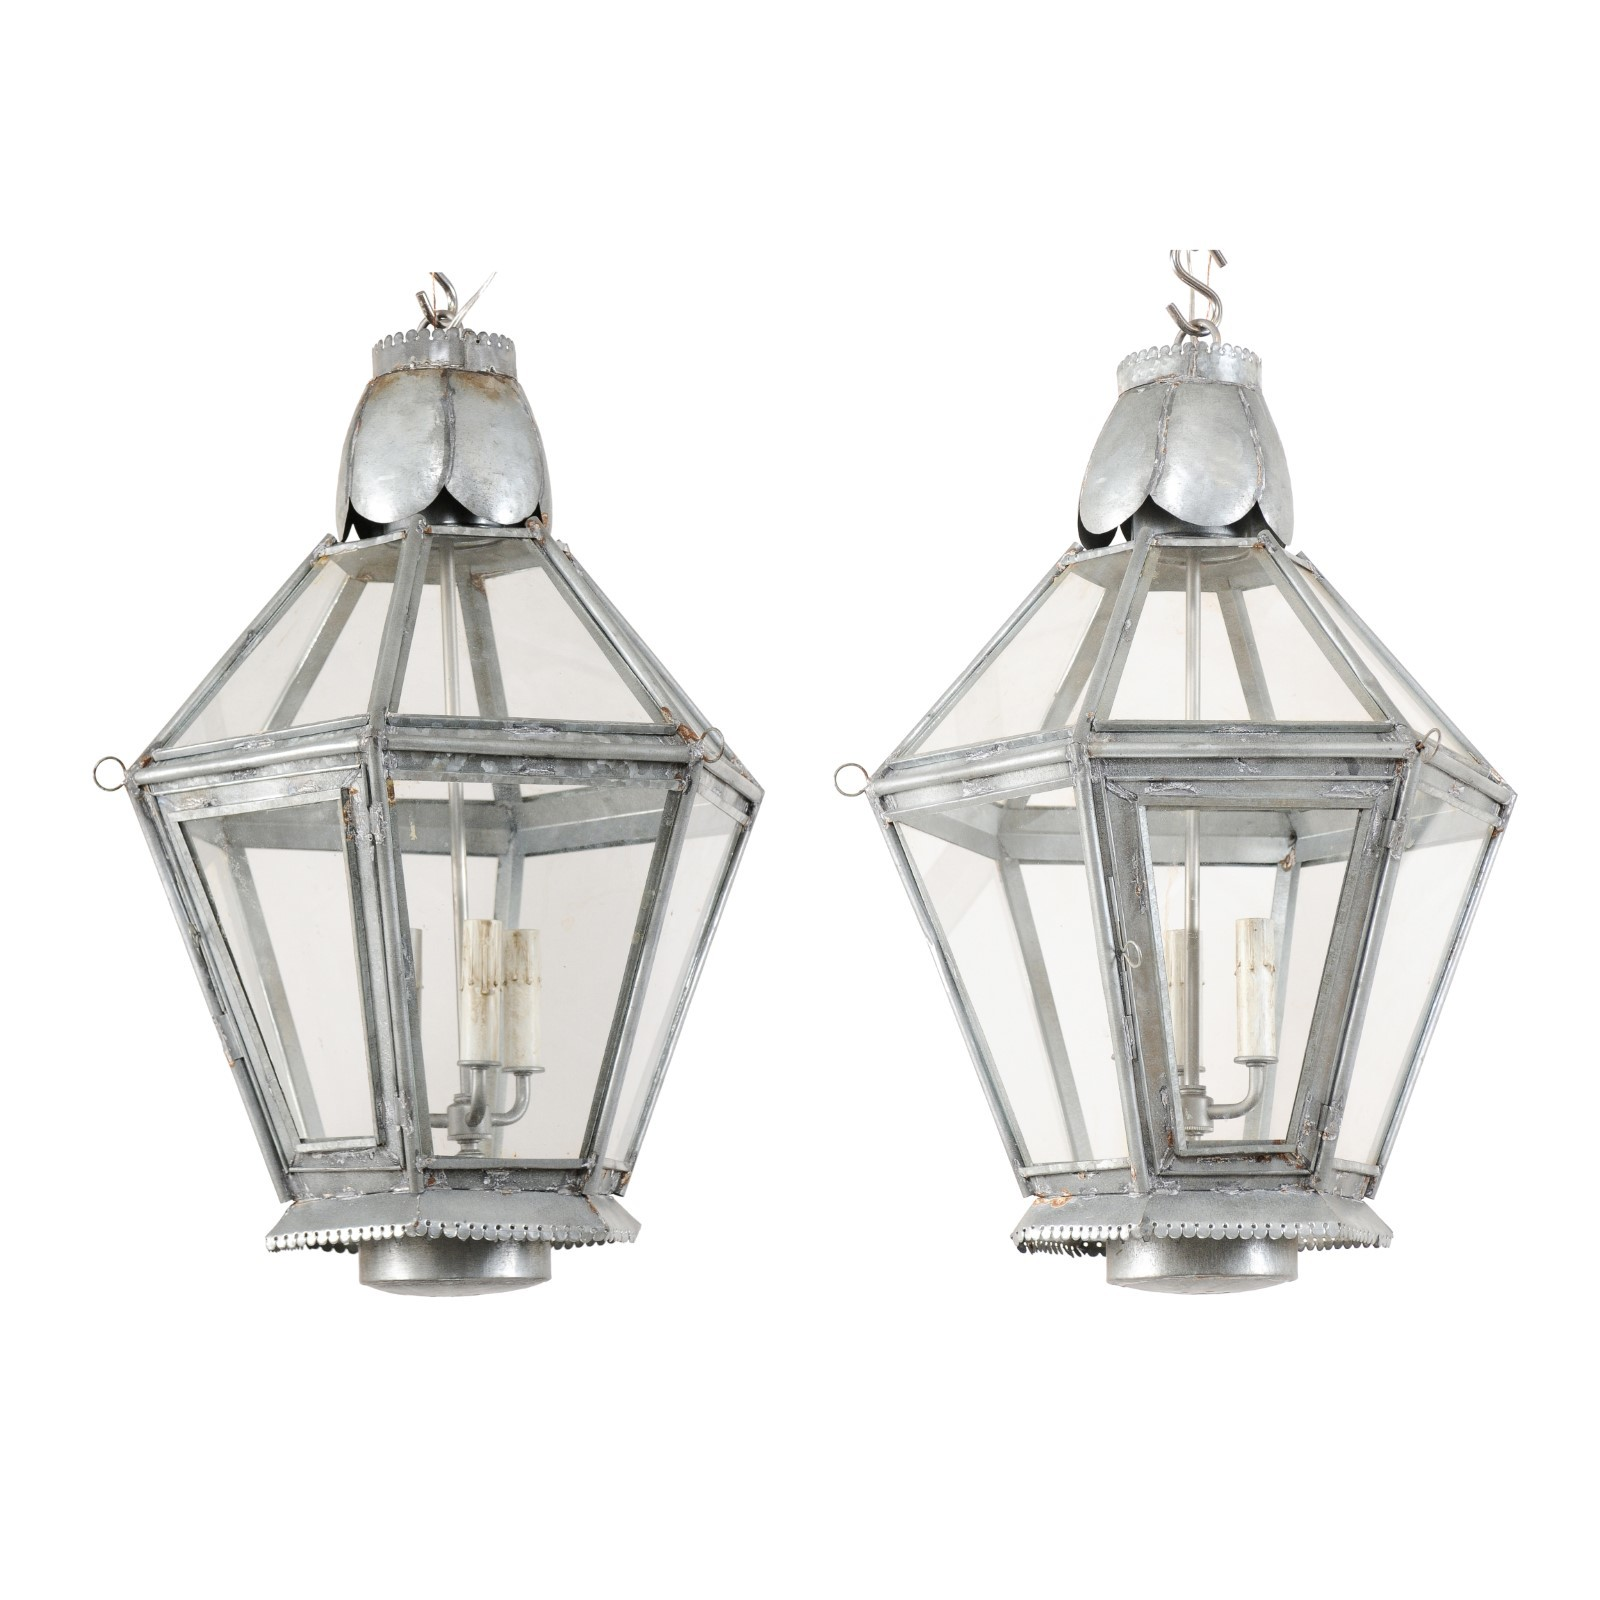 Pair Silver Hanging Lanterns w/3 Lights